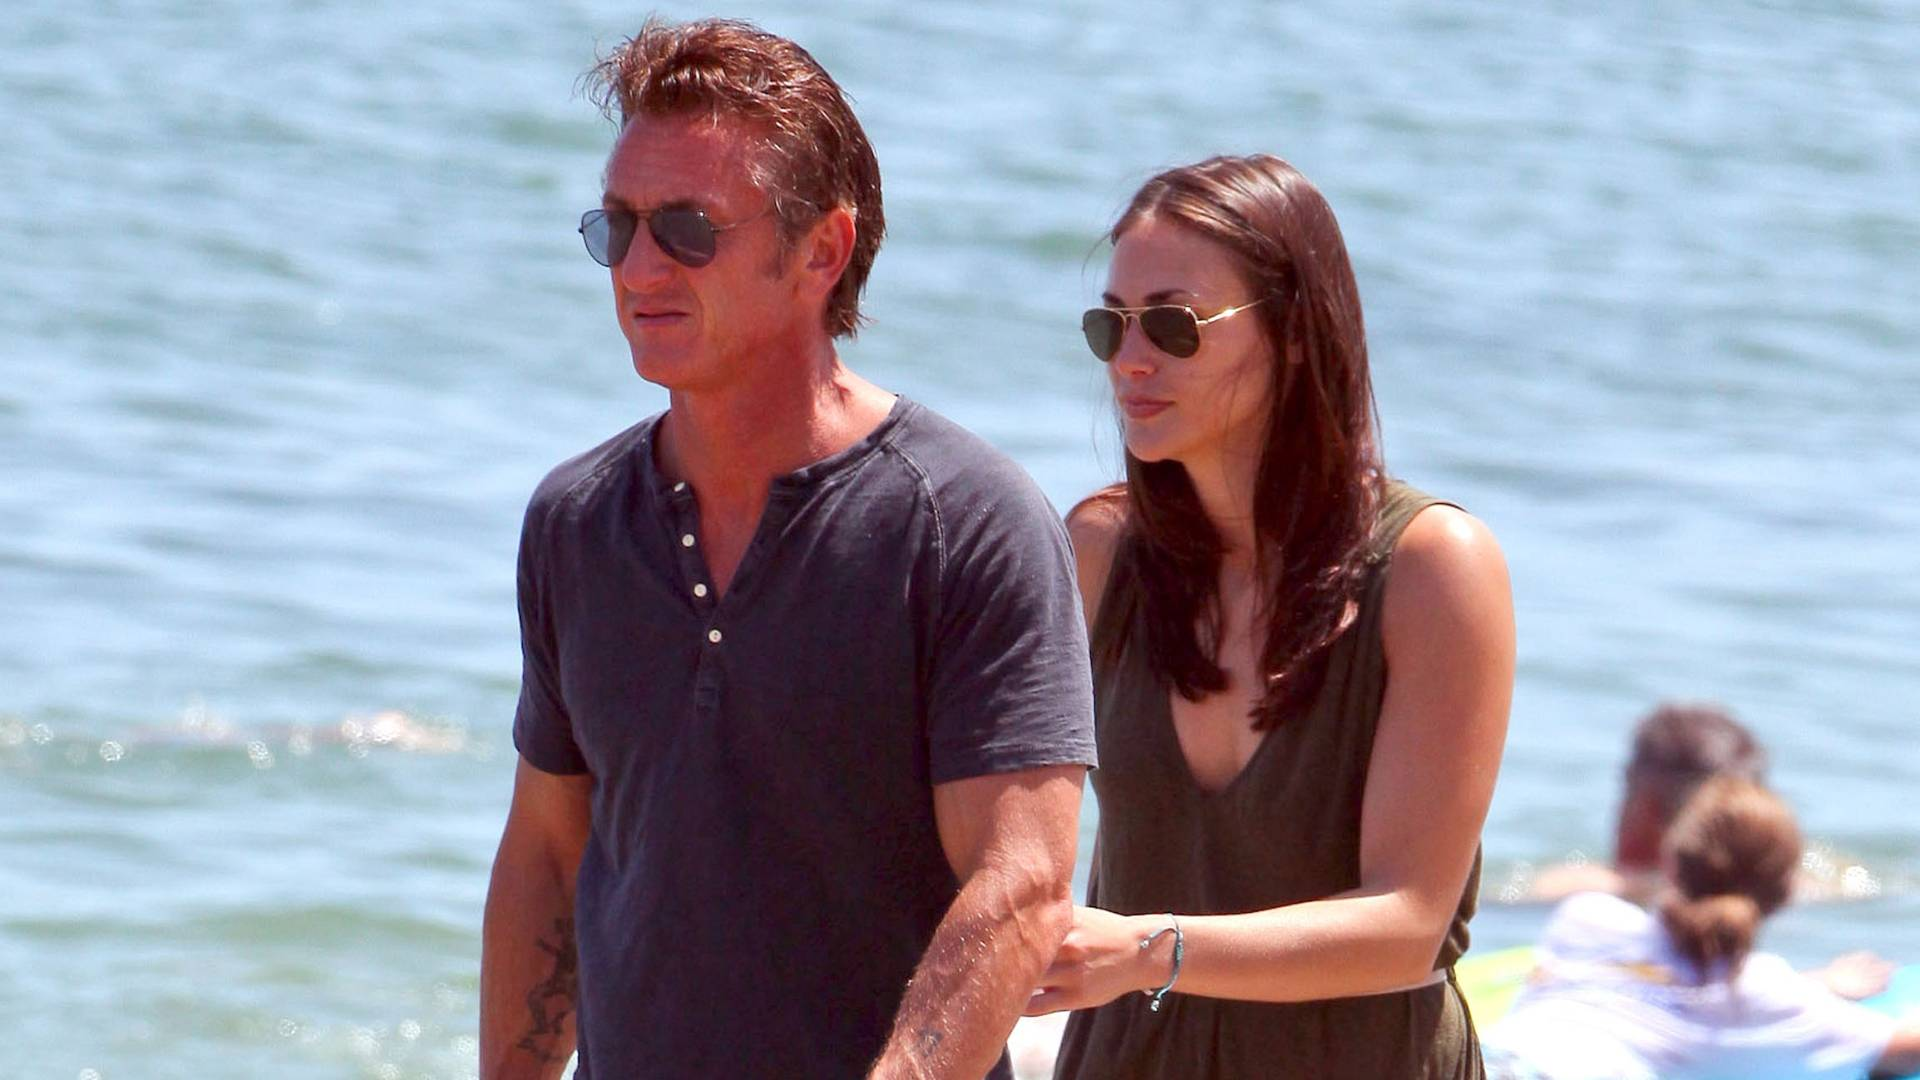 Sean Penn e nova namorada passeiam em praia de Malibu (4/7/2011)